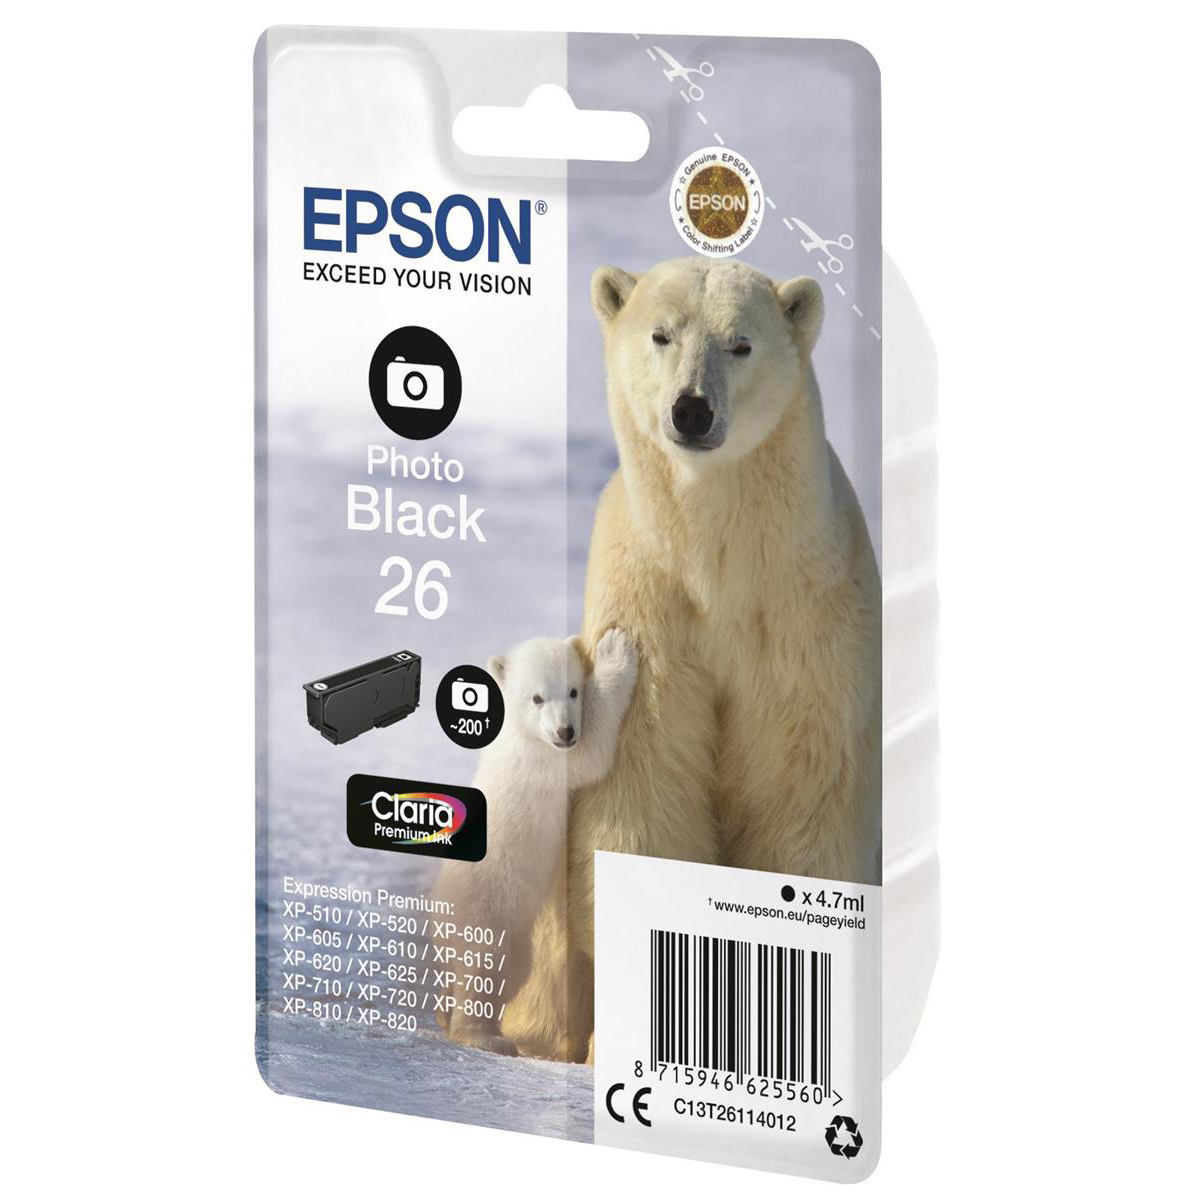 Epson 26 Inkjet Cartridge Polar Bear Page Life 200pp 4.7ml Photo Black Ref C13T26114012